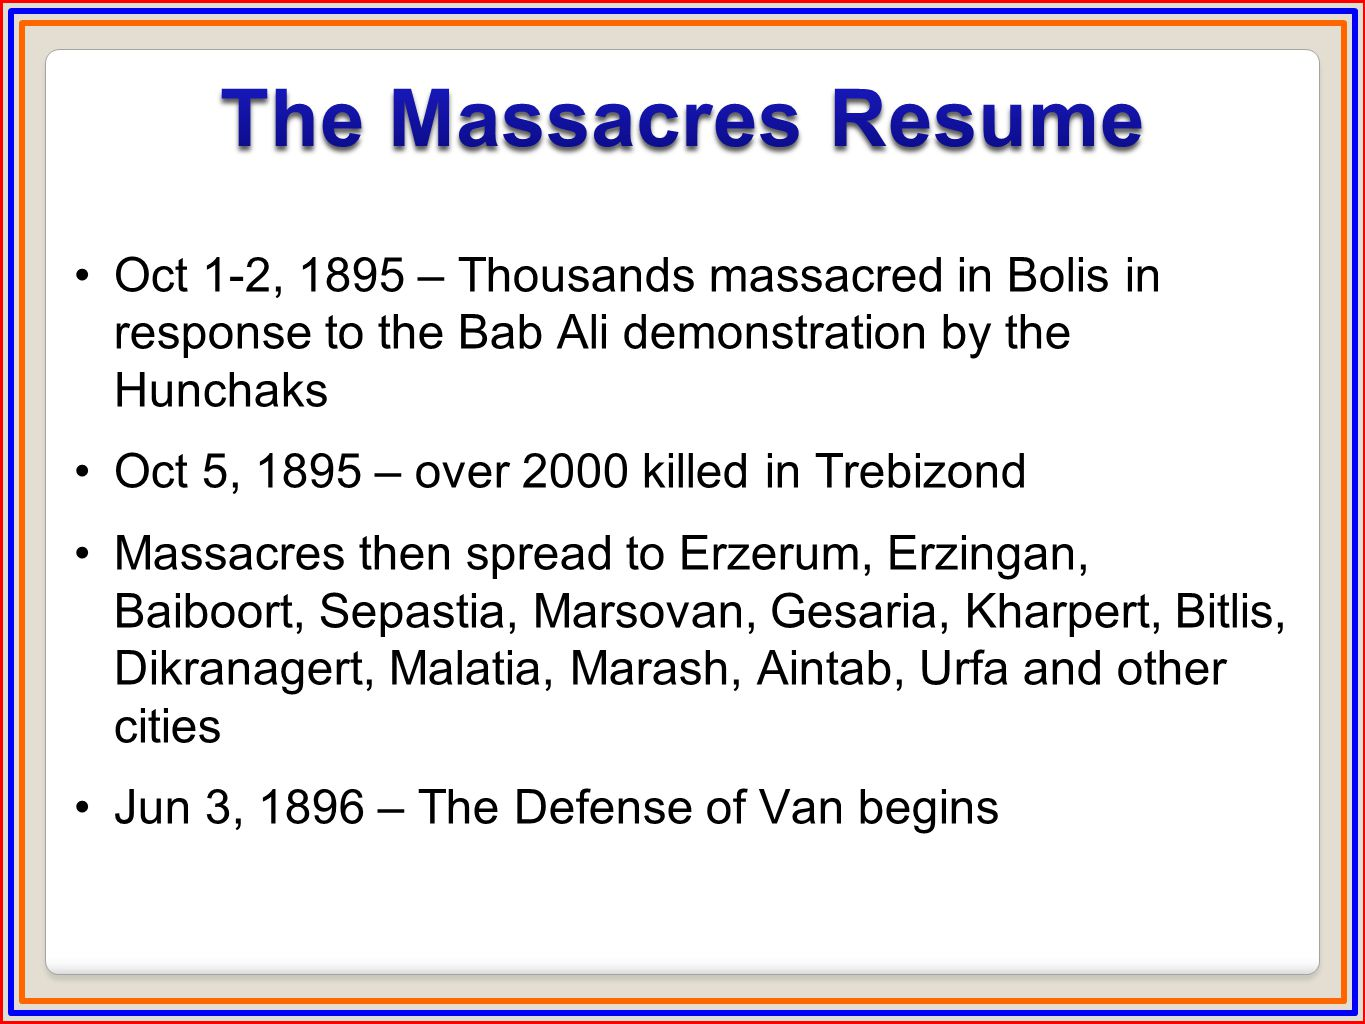 Oct 1-2, 1895 – Thousands massacred in Bolis in response to the Bab Ali demonstration by the Hunchaks Oct 5, 1895 – over 2000 killed in Trebizond Massacres then spread to Erzerum, Erzingan, Baiboort, Sepastia, Marsovan, Gesaria, Kharpert, Bitlis, Dikranagert, Malatia, Marash, Aintab, Urfa and other cities Jun 3, 1896 – The Defense of Van begins